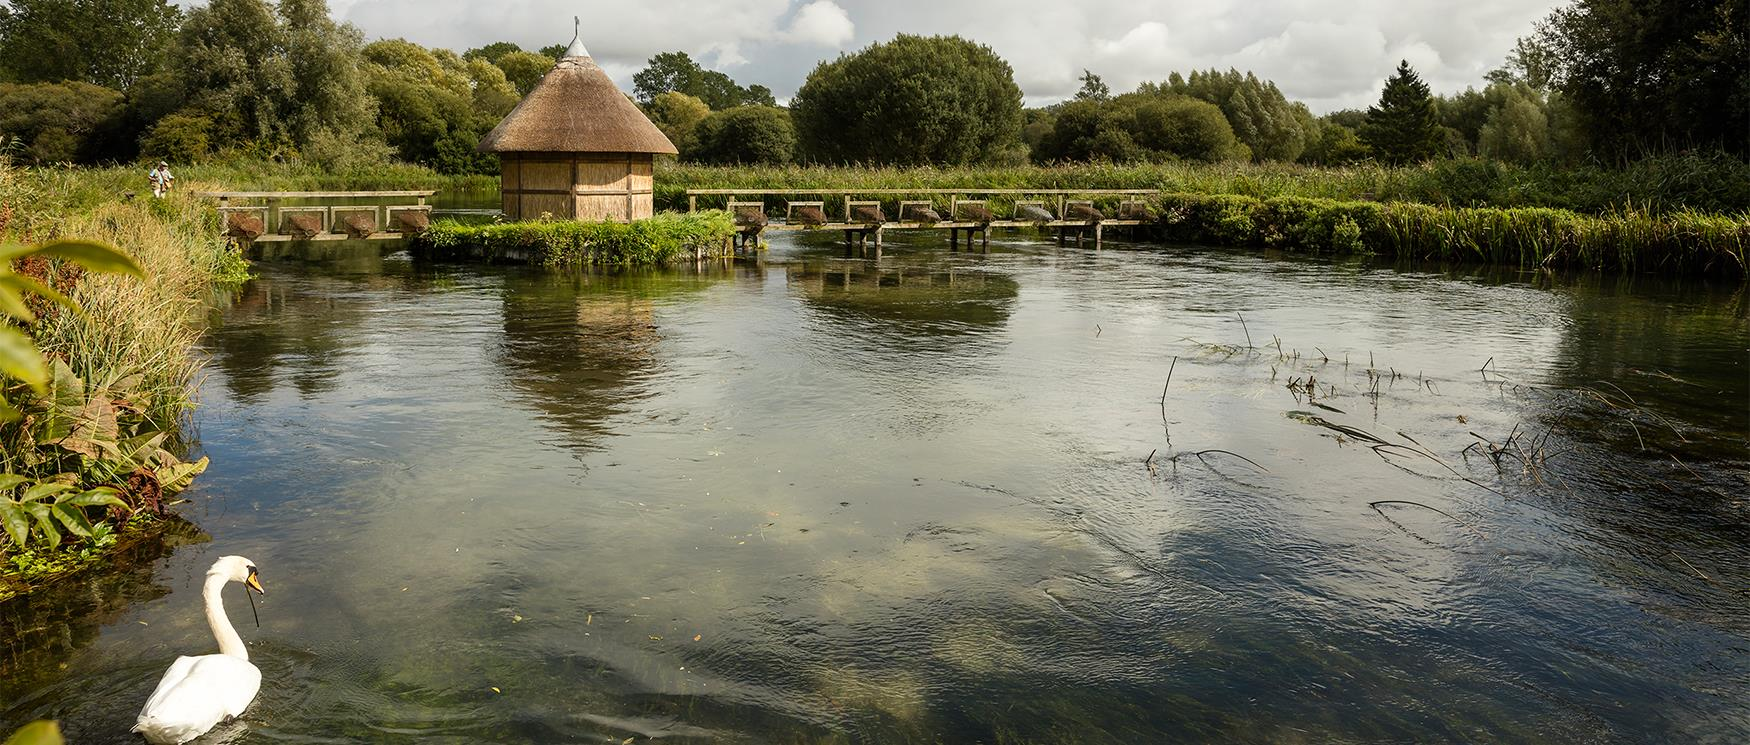 River Test, Longstock